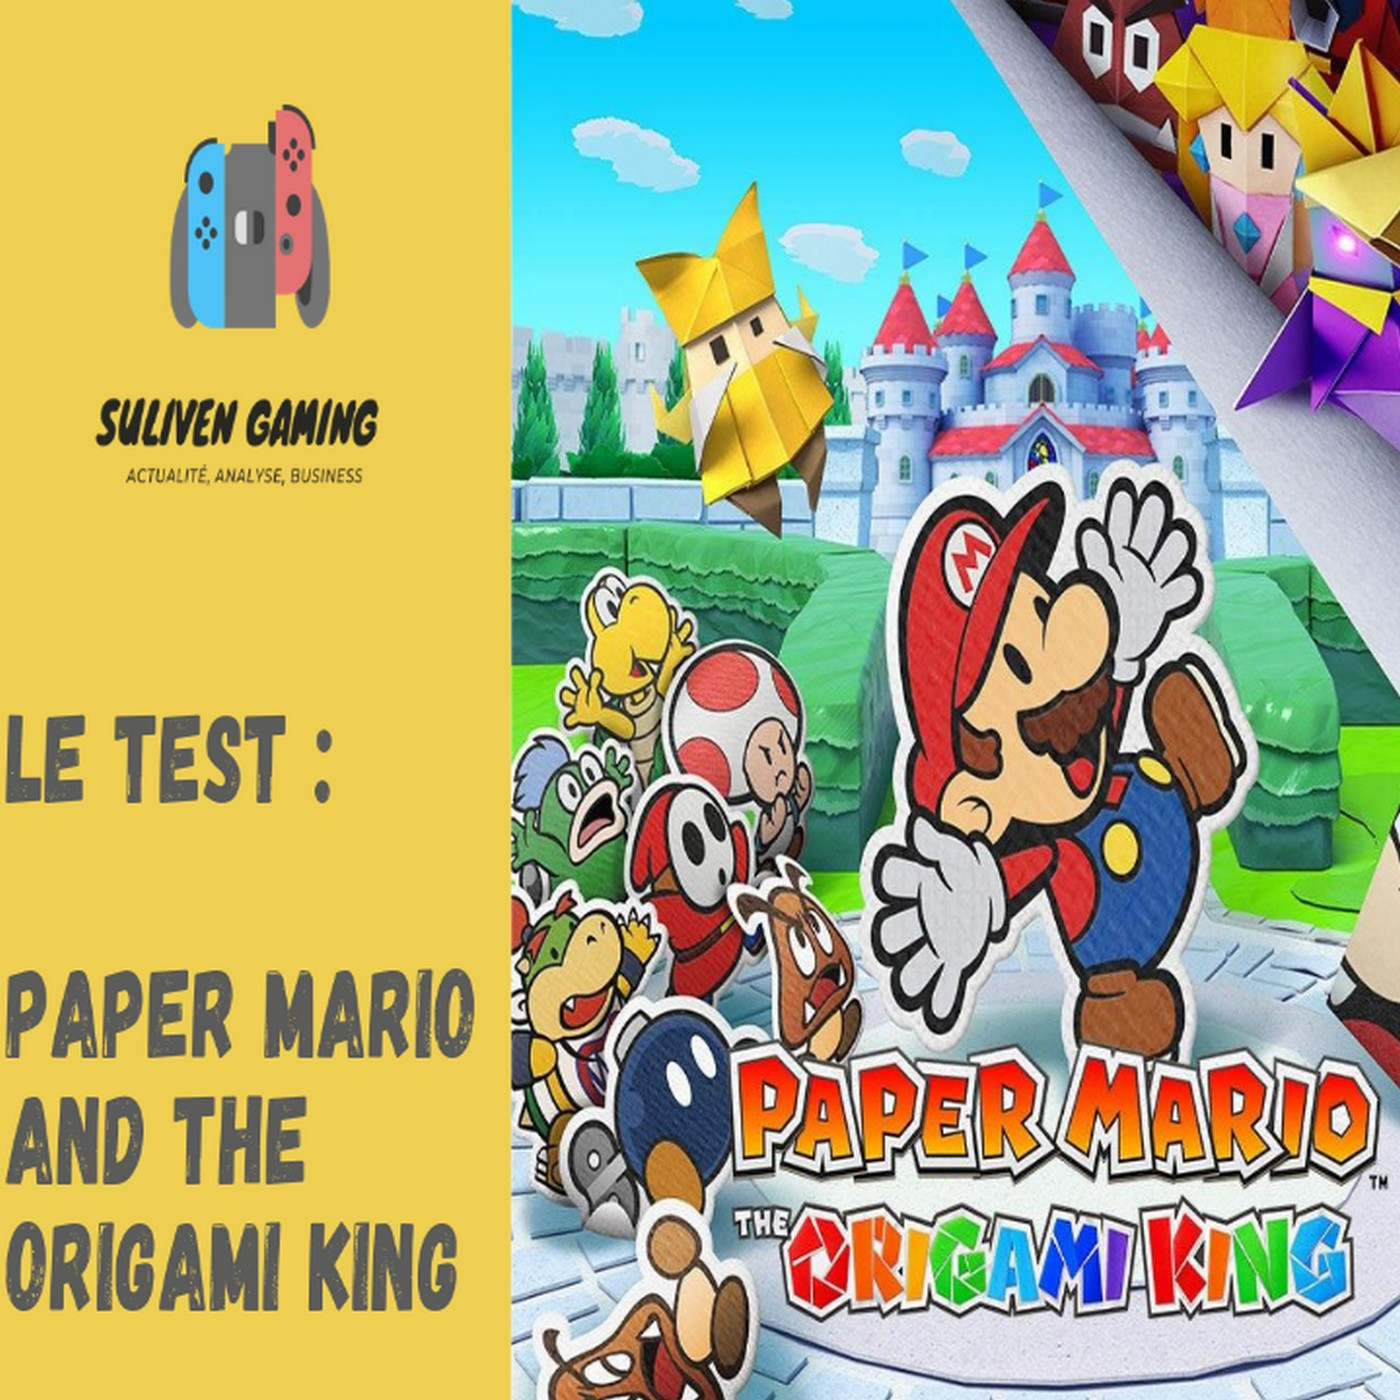 Le test : Paper Mario and the Origami King